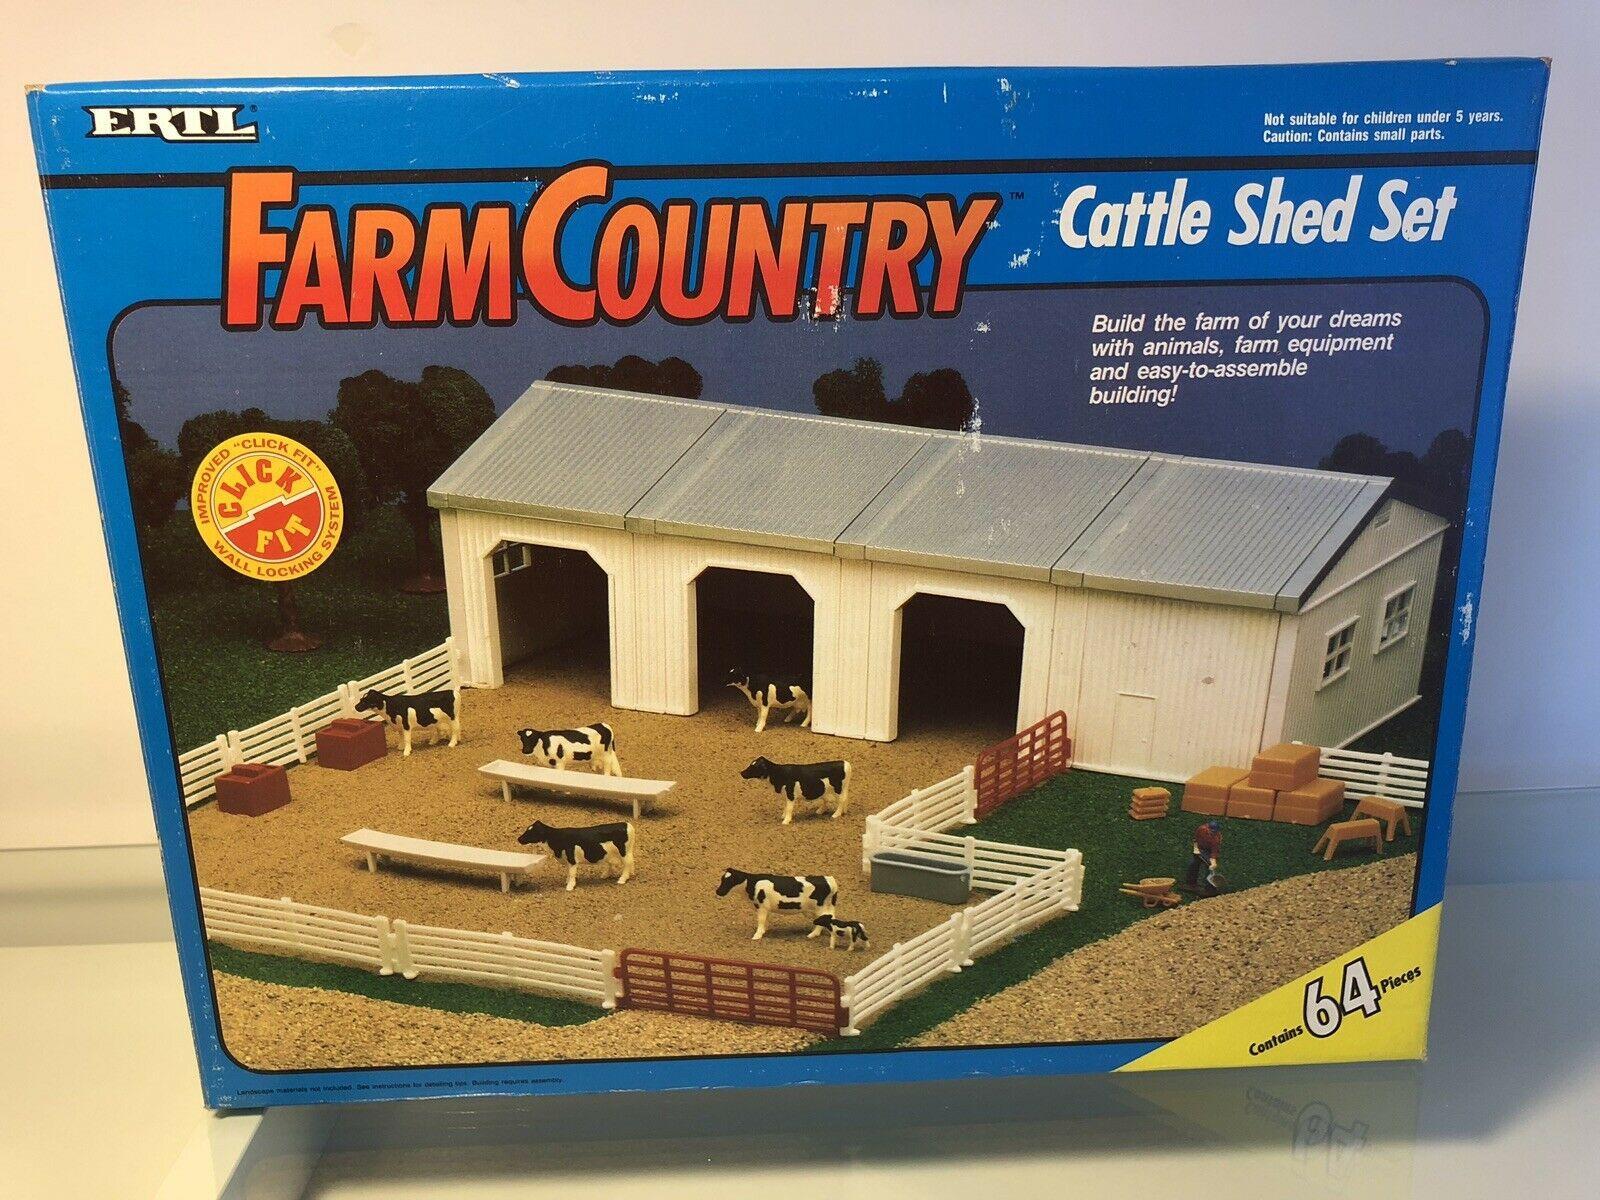 1 64 ERTL FARM COUNTRY CATTLE SHED SET TOY BUILDING SCALE (64 PIECES)